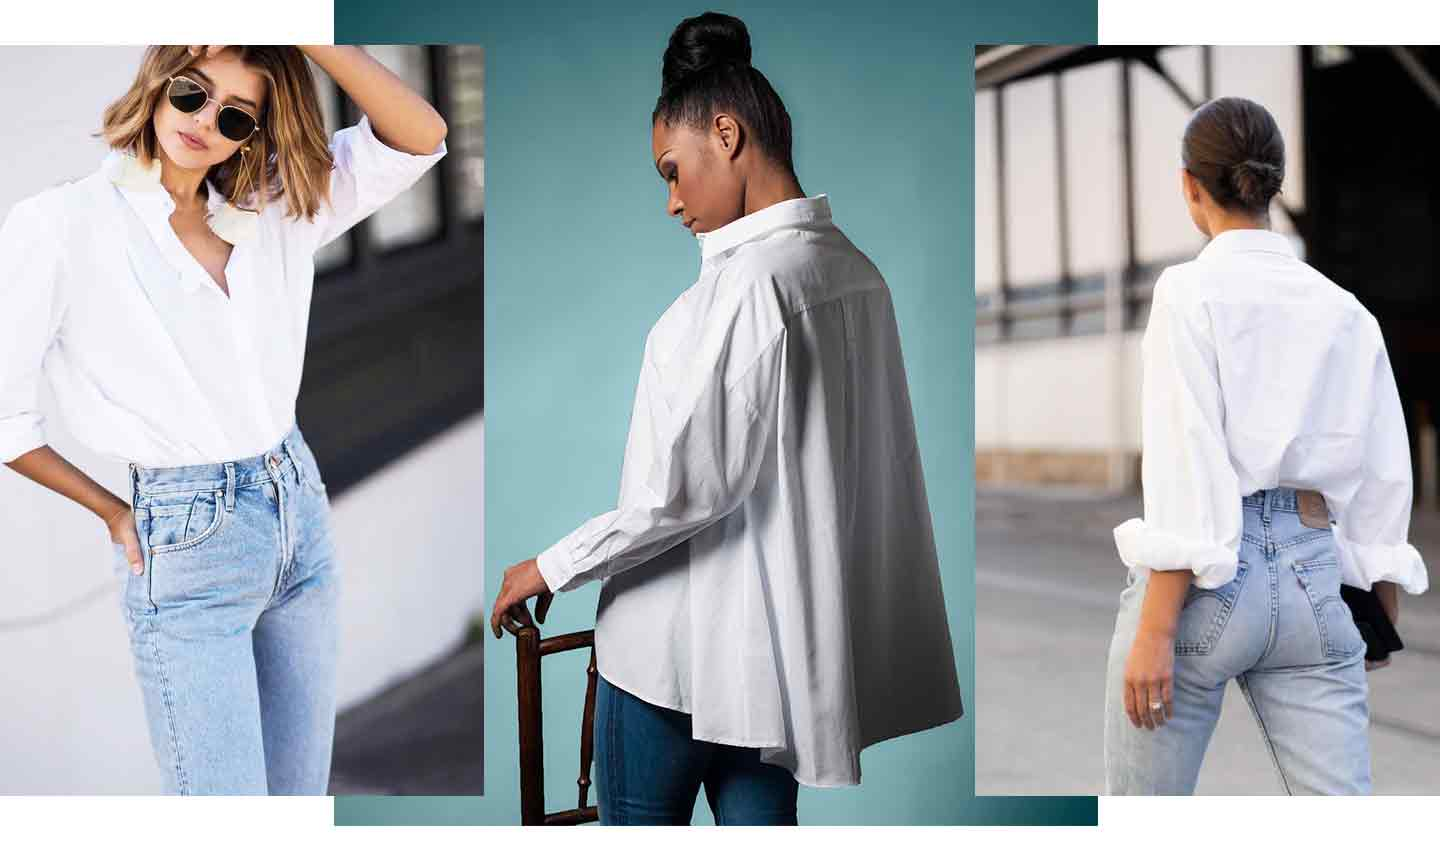 group-of-images-of-women-wearing-white-shirts-and-blue-denim-jeans